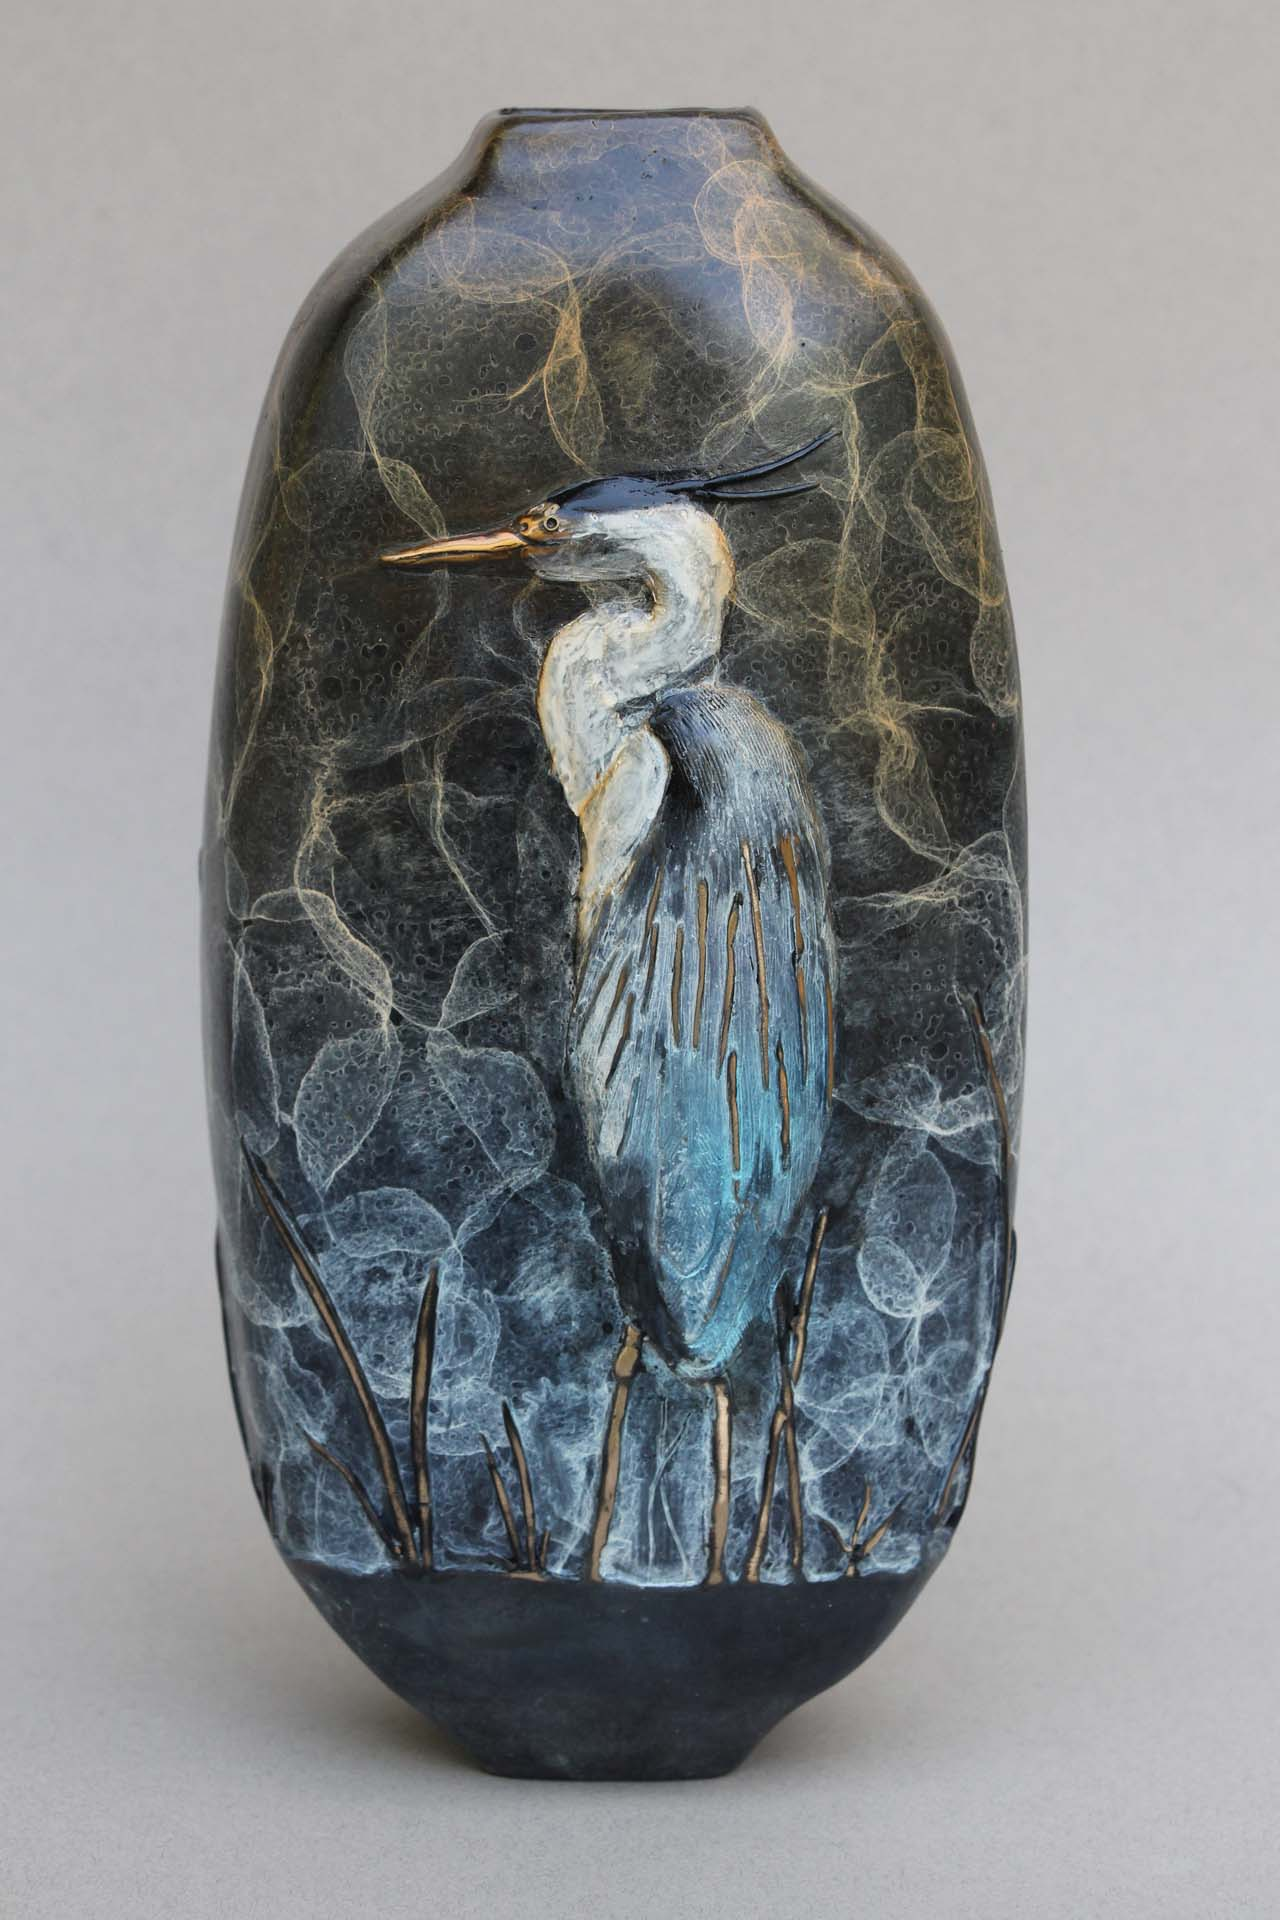 Side 2 of the Great Blue Heron vase. The Blue Heron is in a relaxed position.